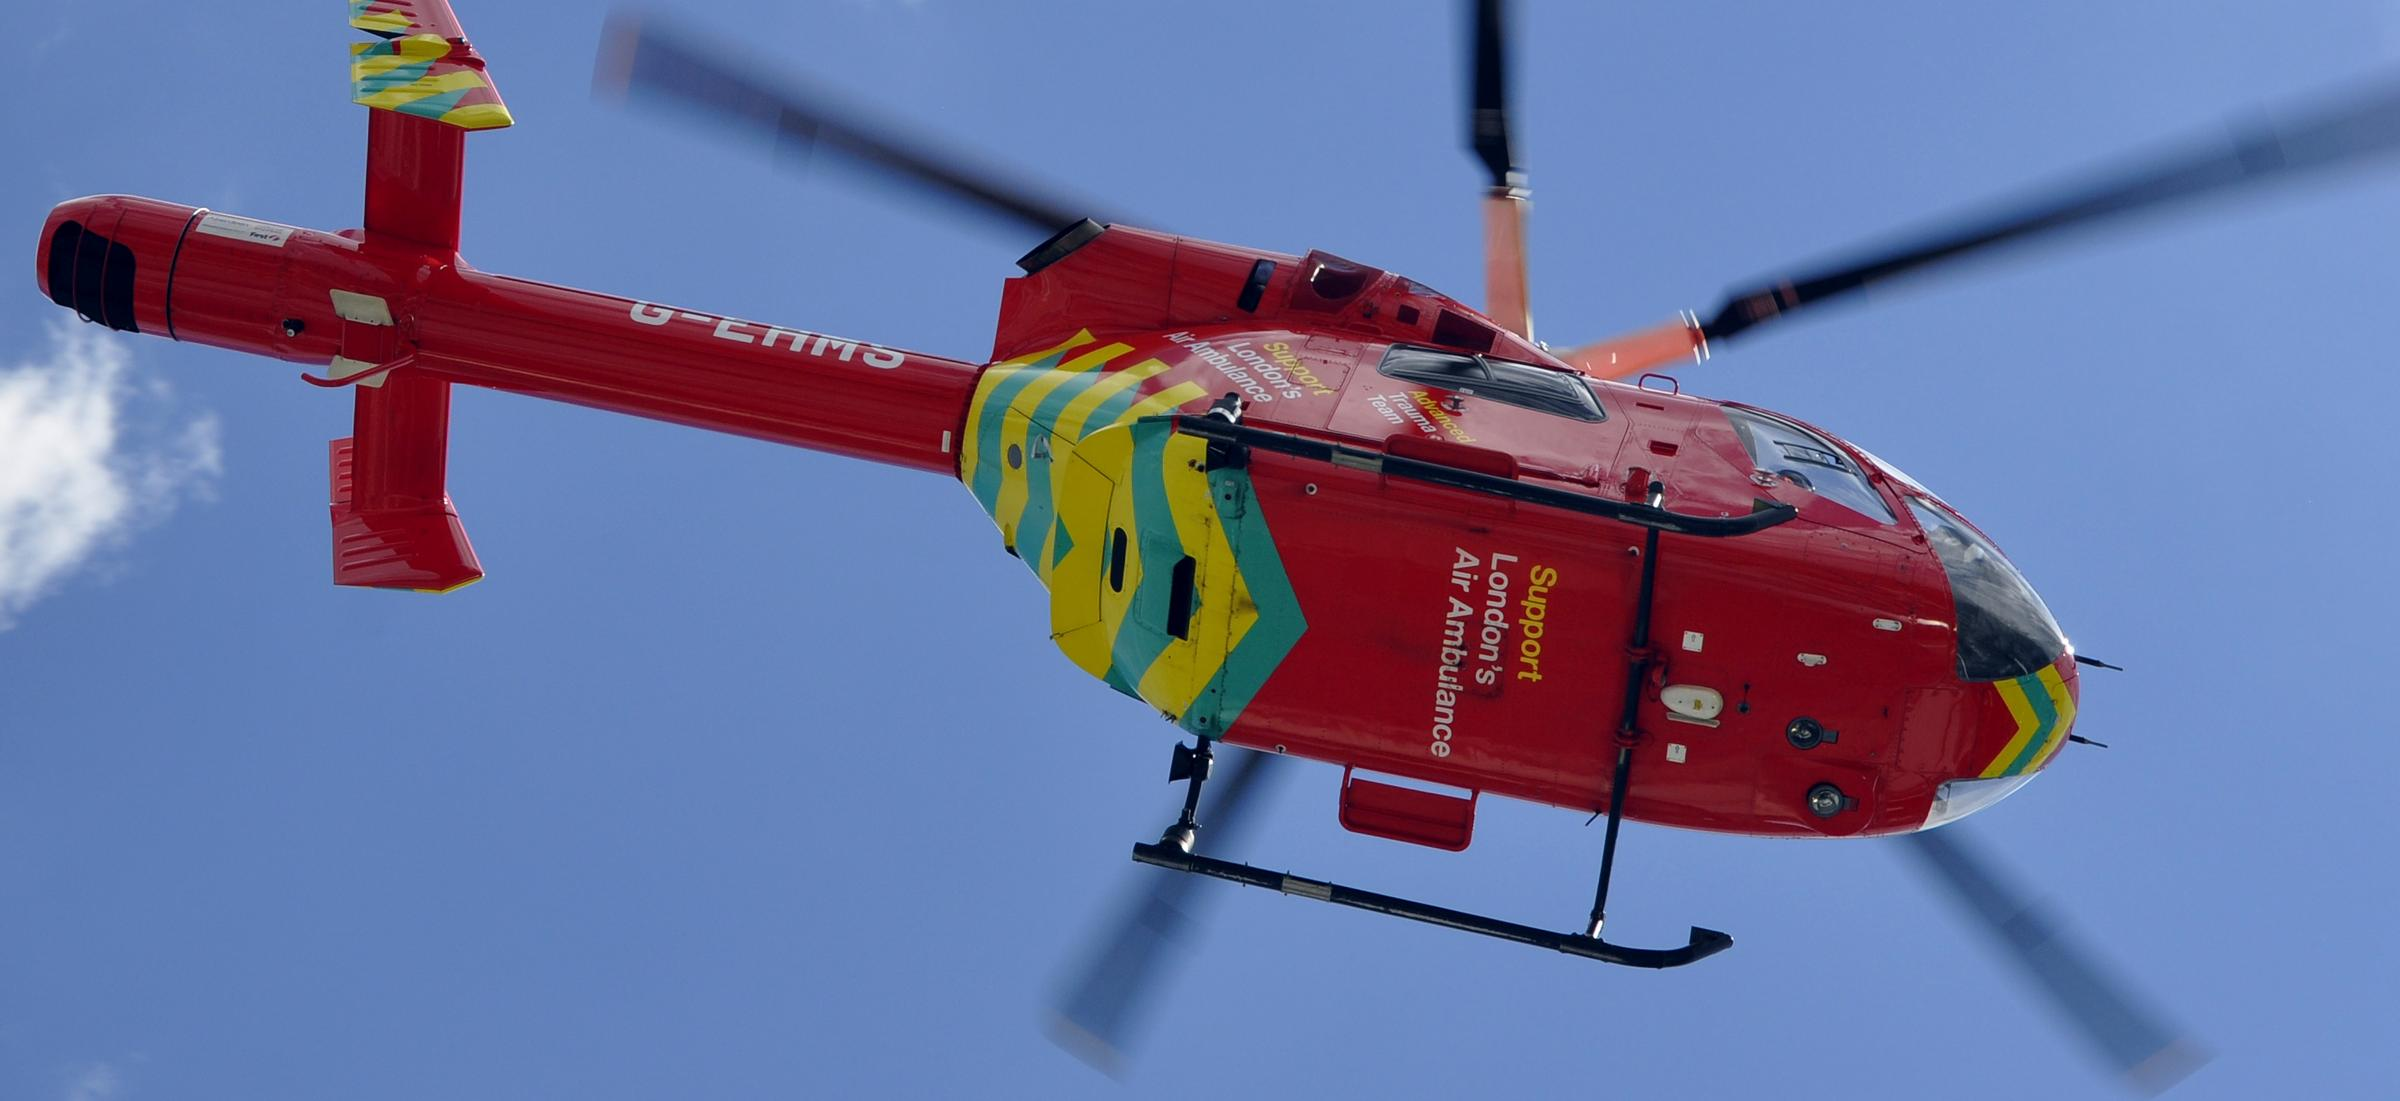 Horse rider airlifted to hospital